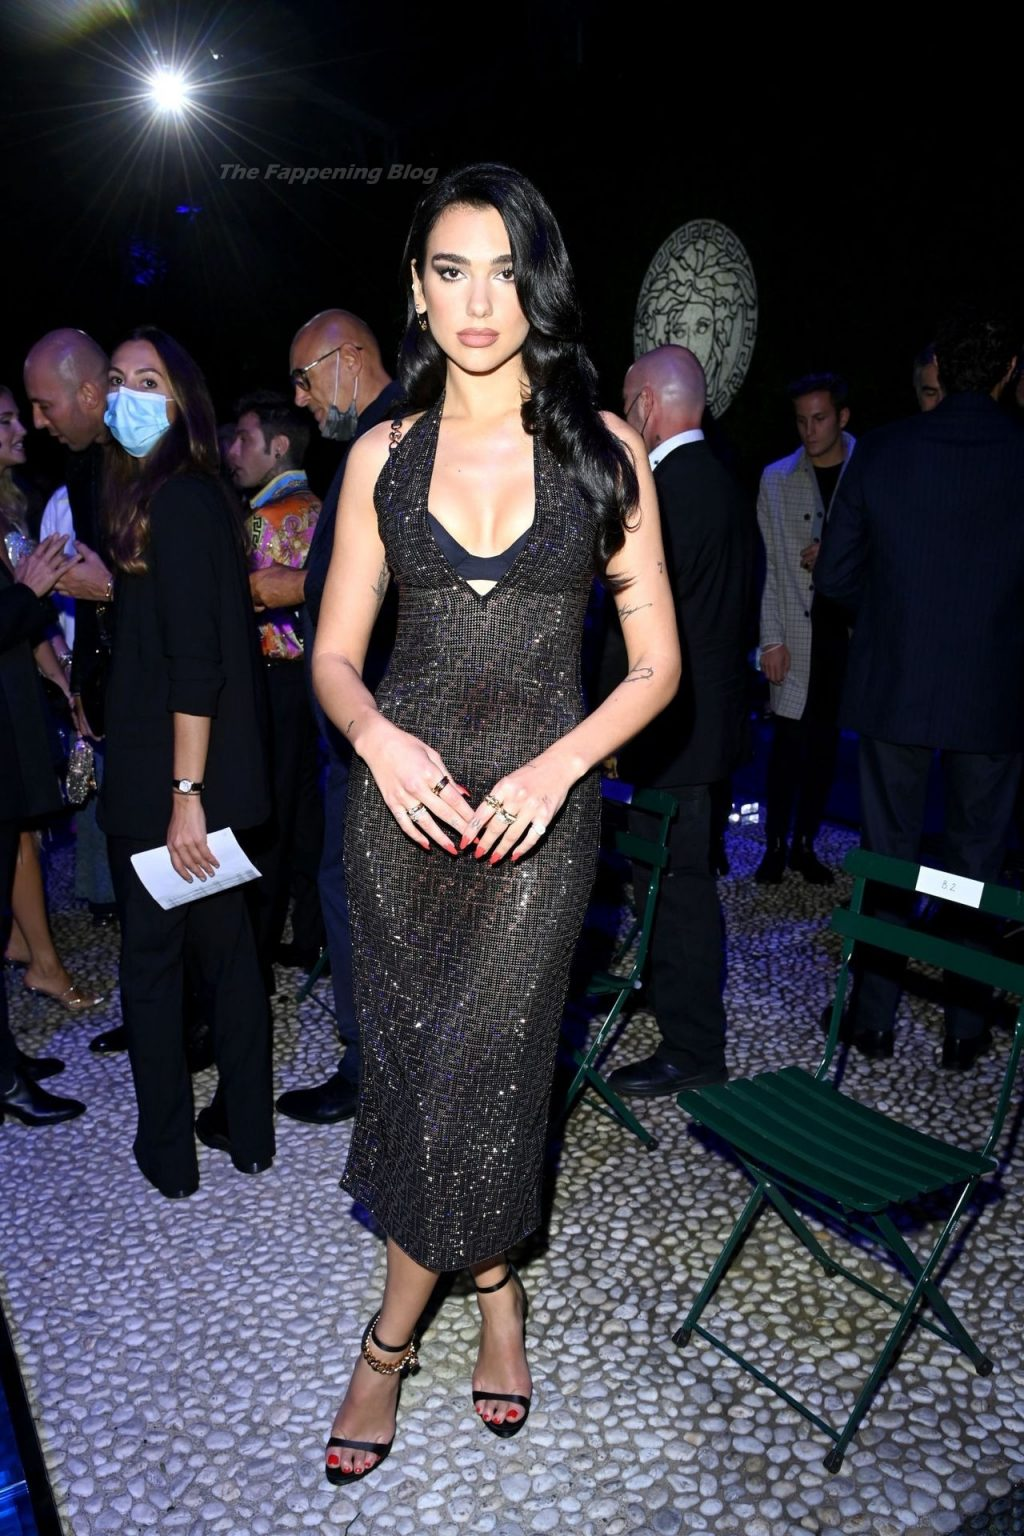 Dua Lipa Puts on a Sultry Display at the Versace-Fendi Fashion Show (108 Photos)